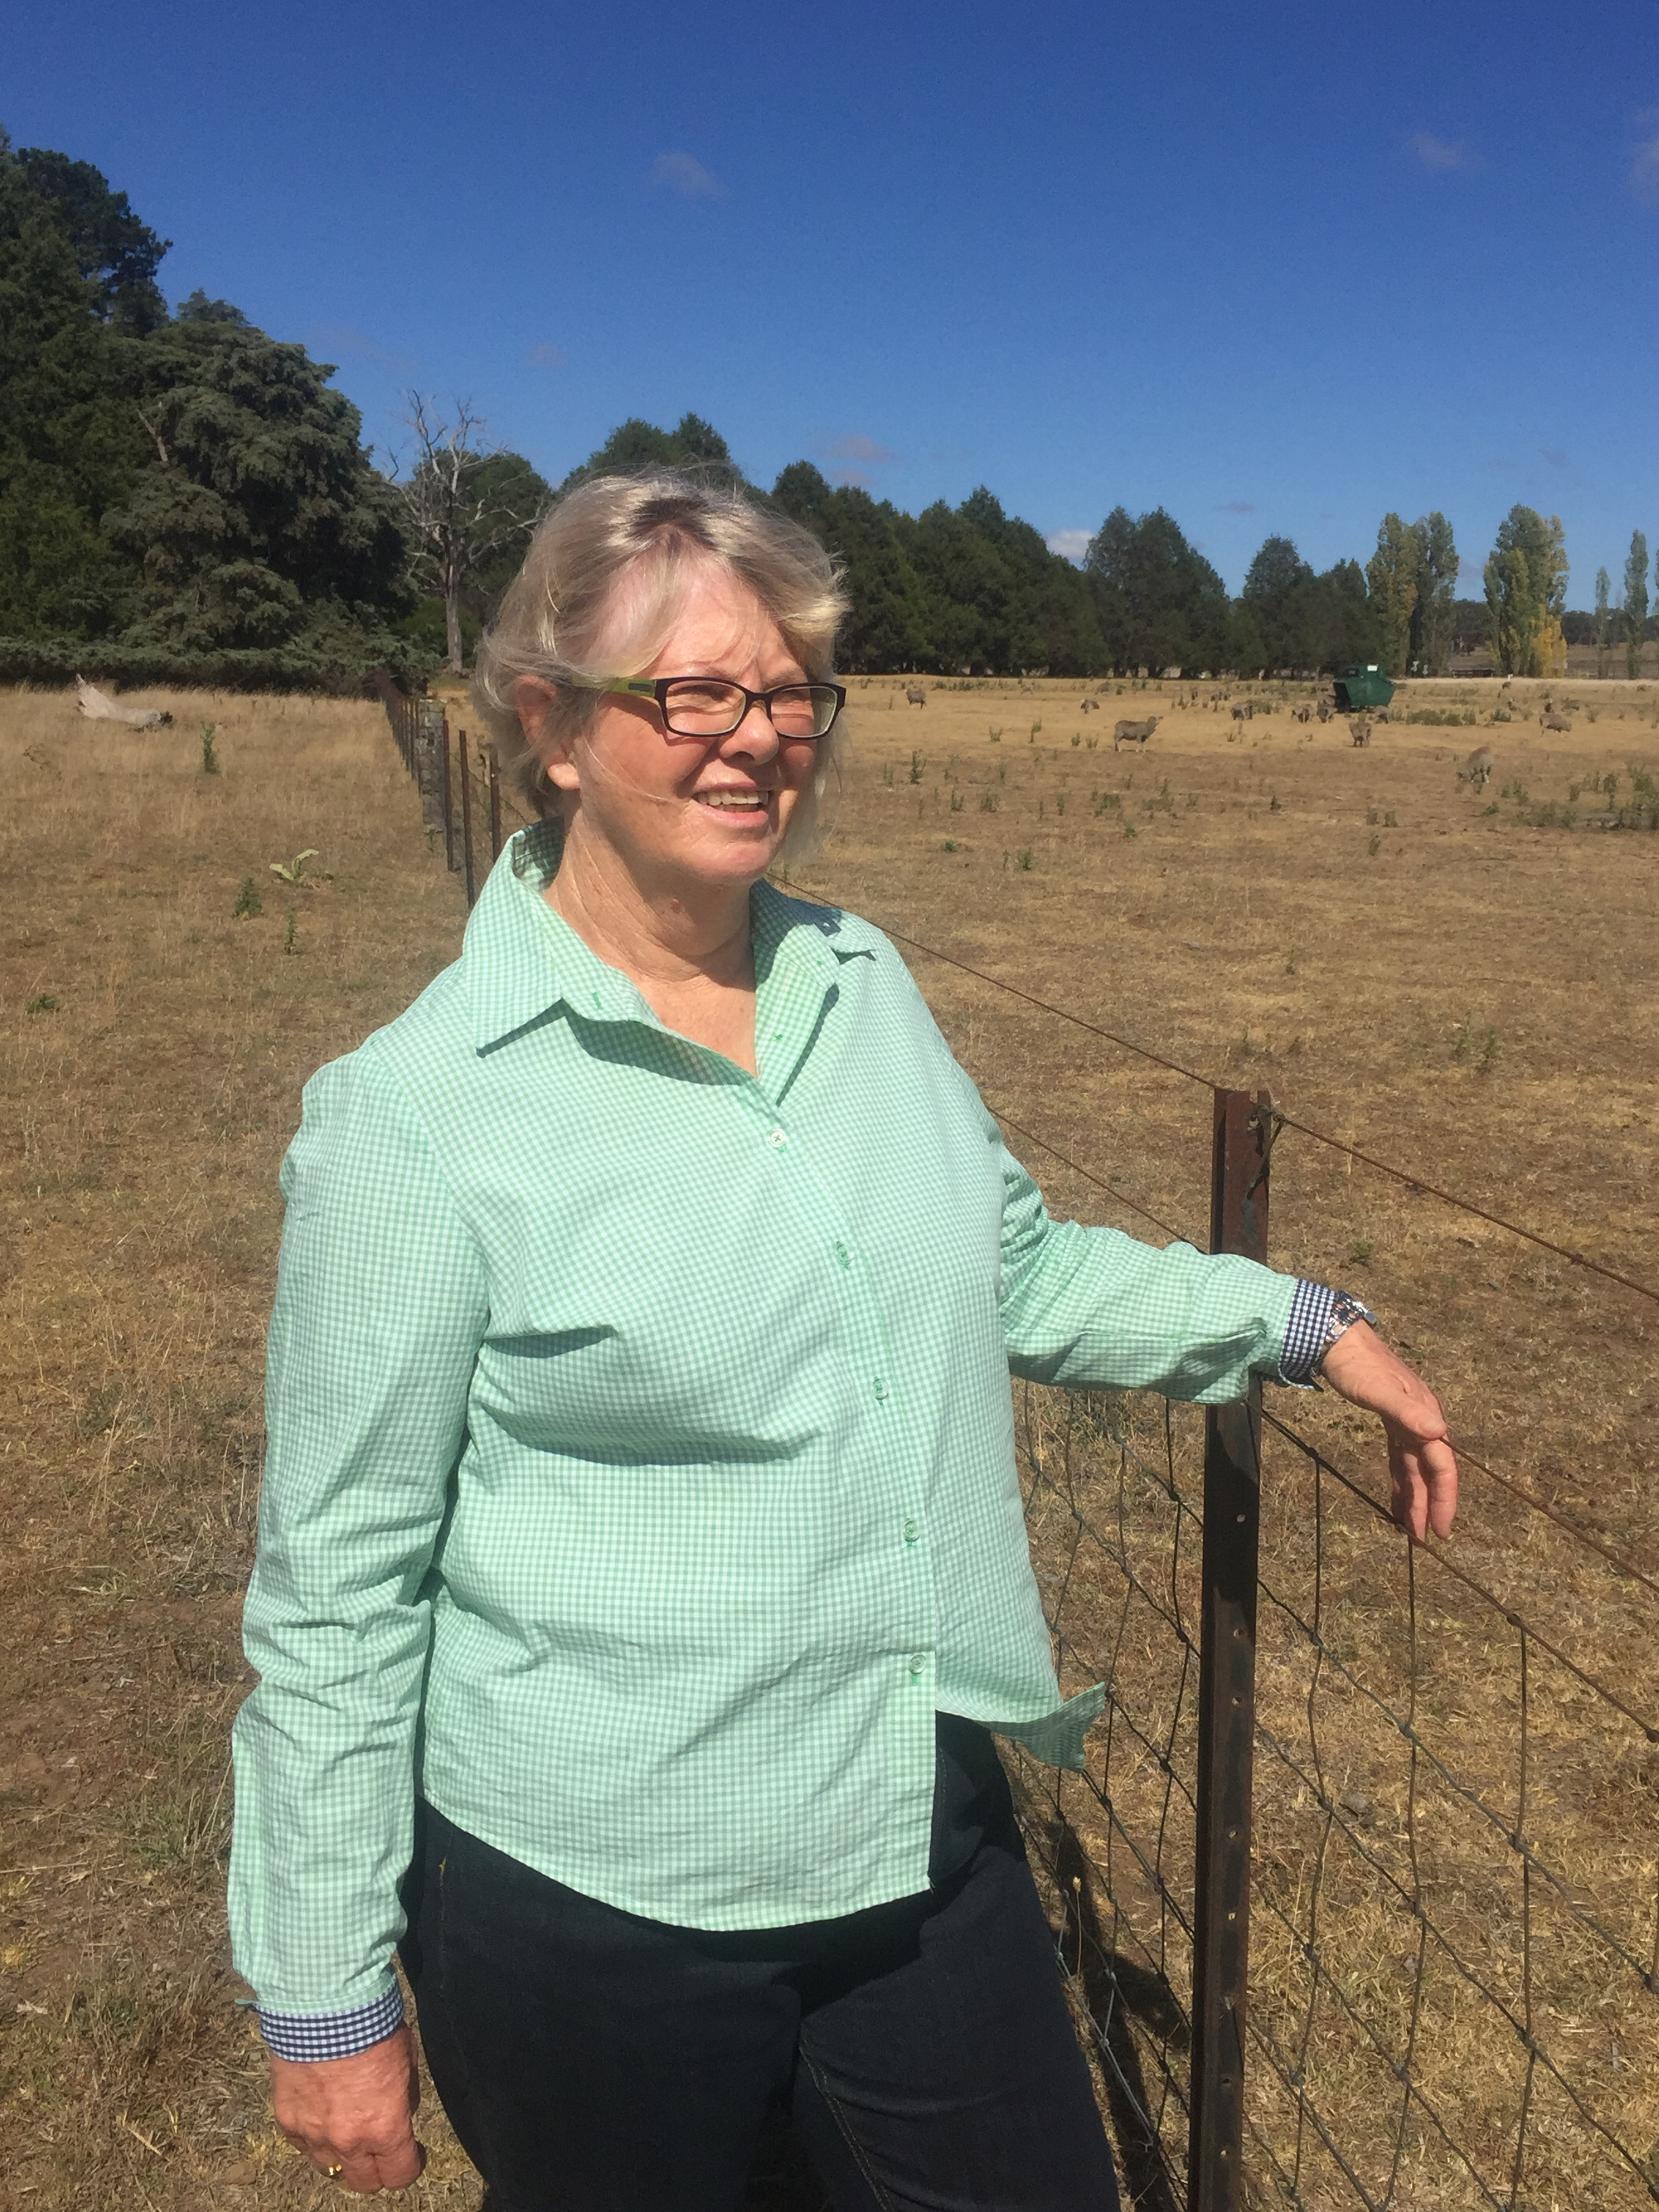 Heather Brewer standing at farm fence